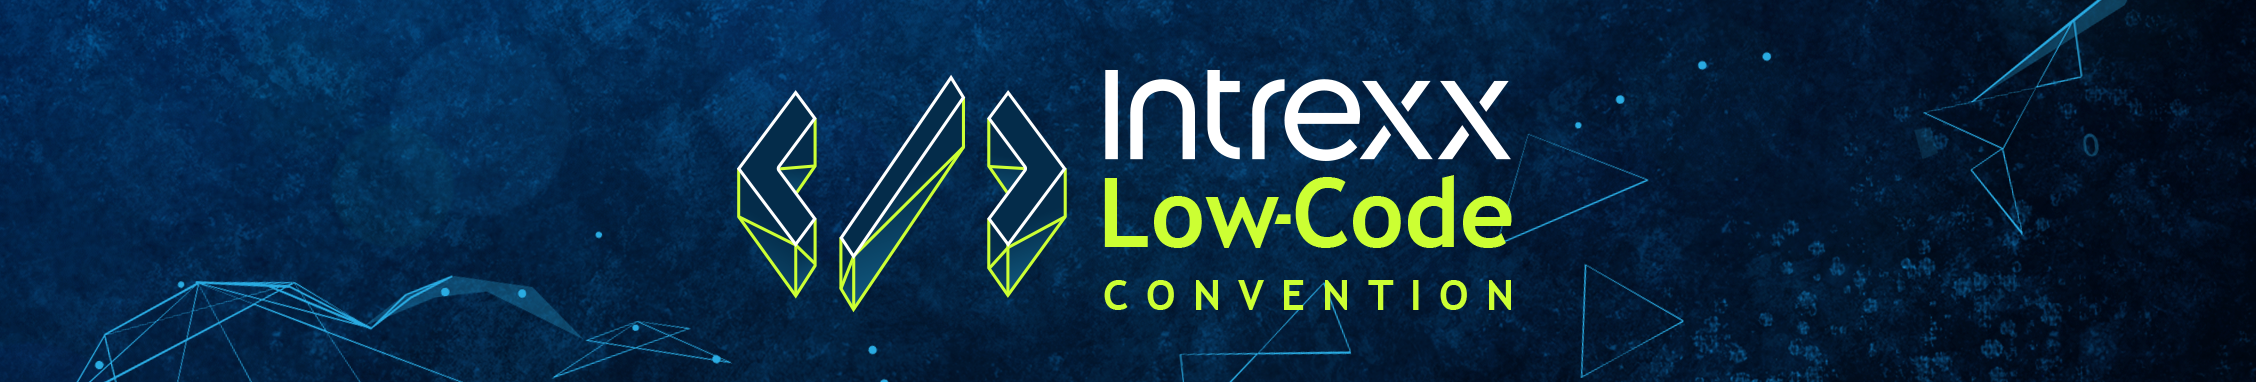 Intrexx Low-Code Convention